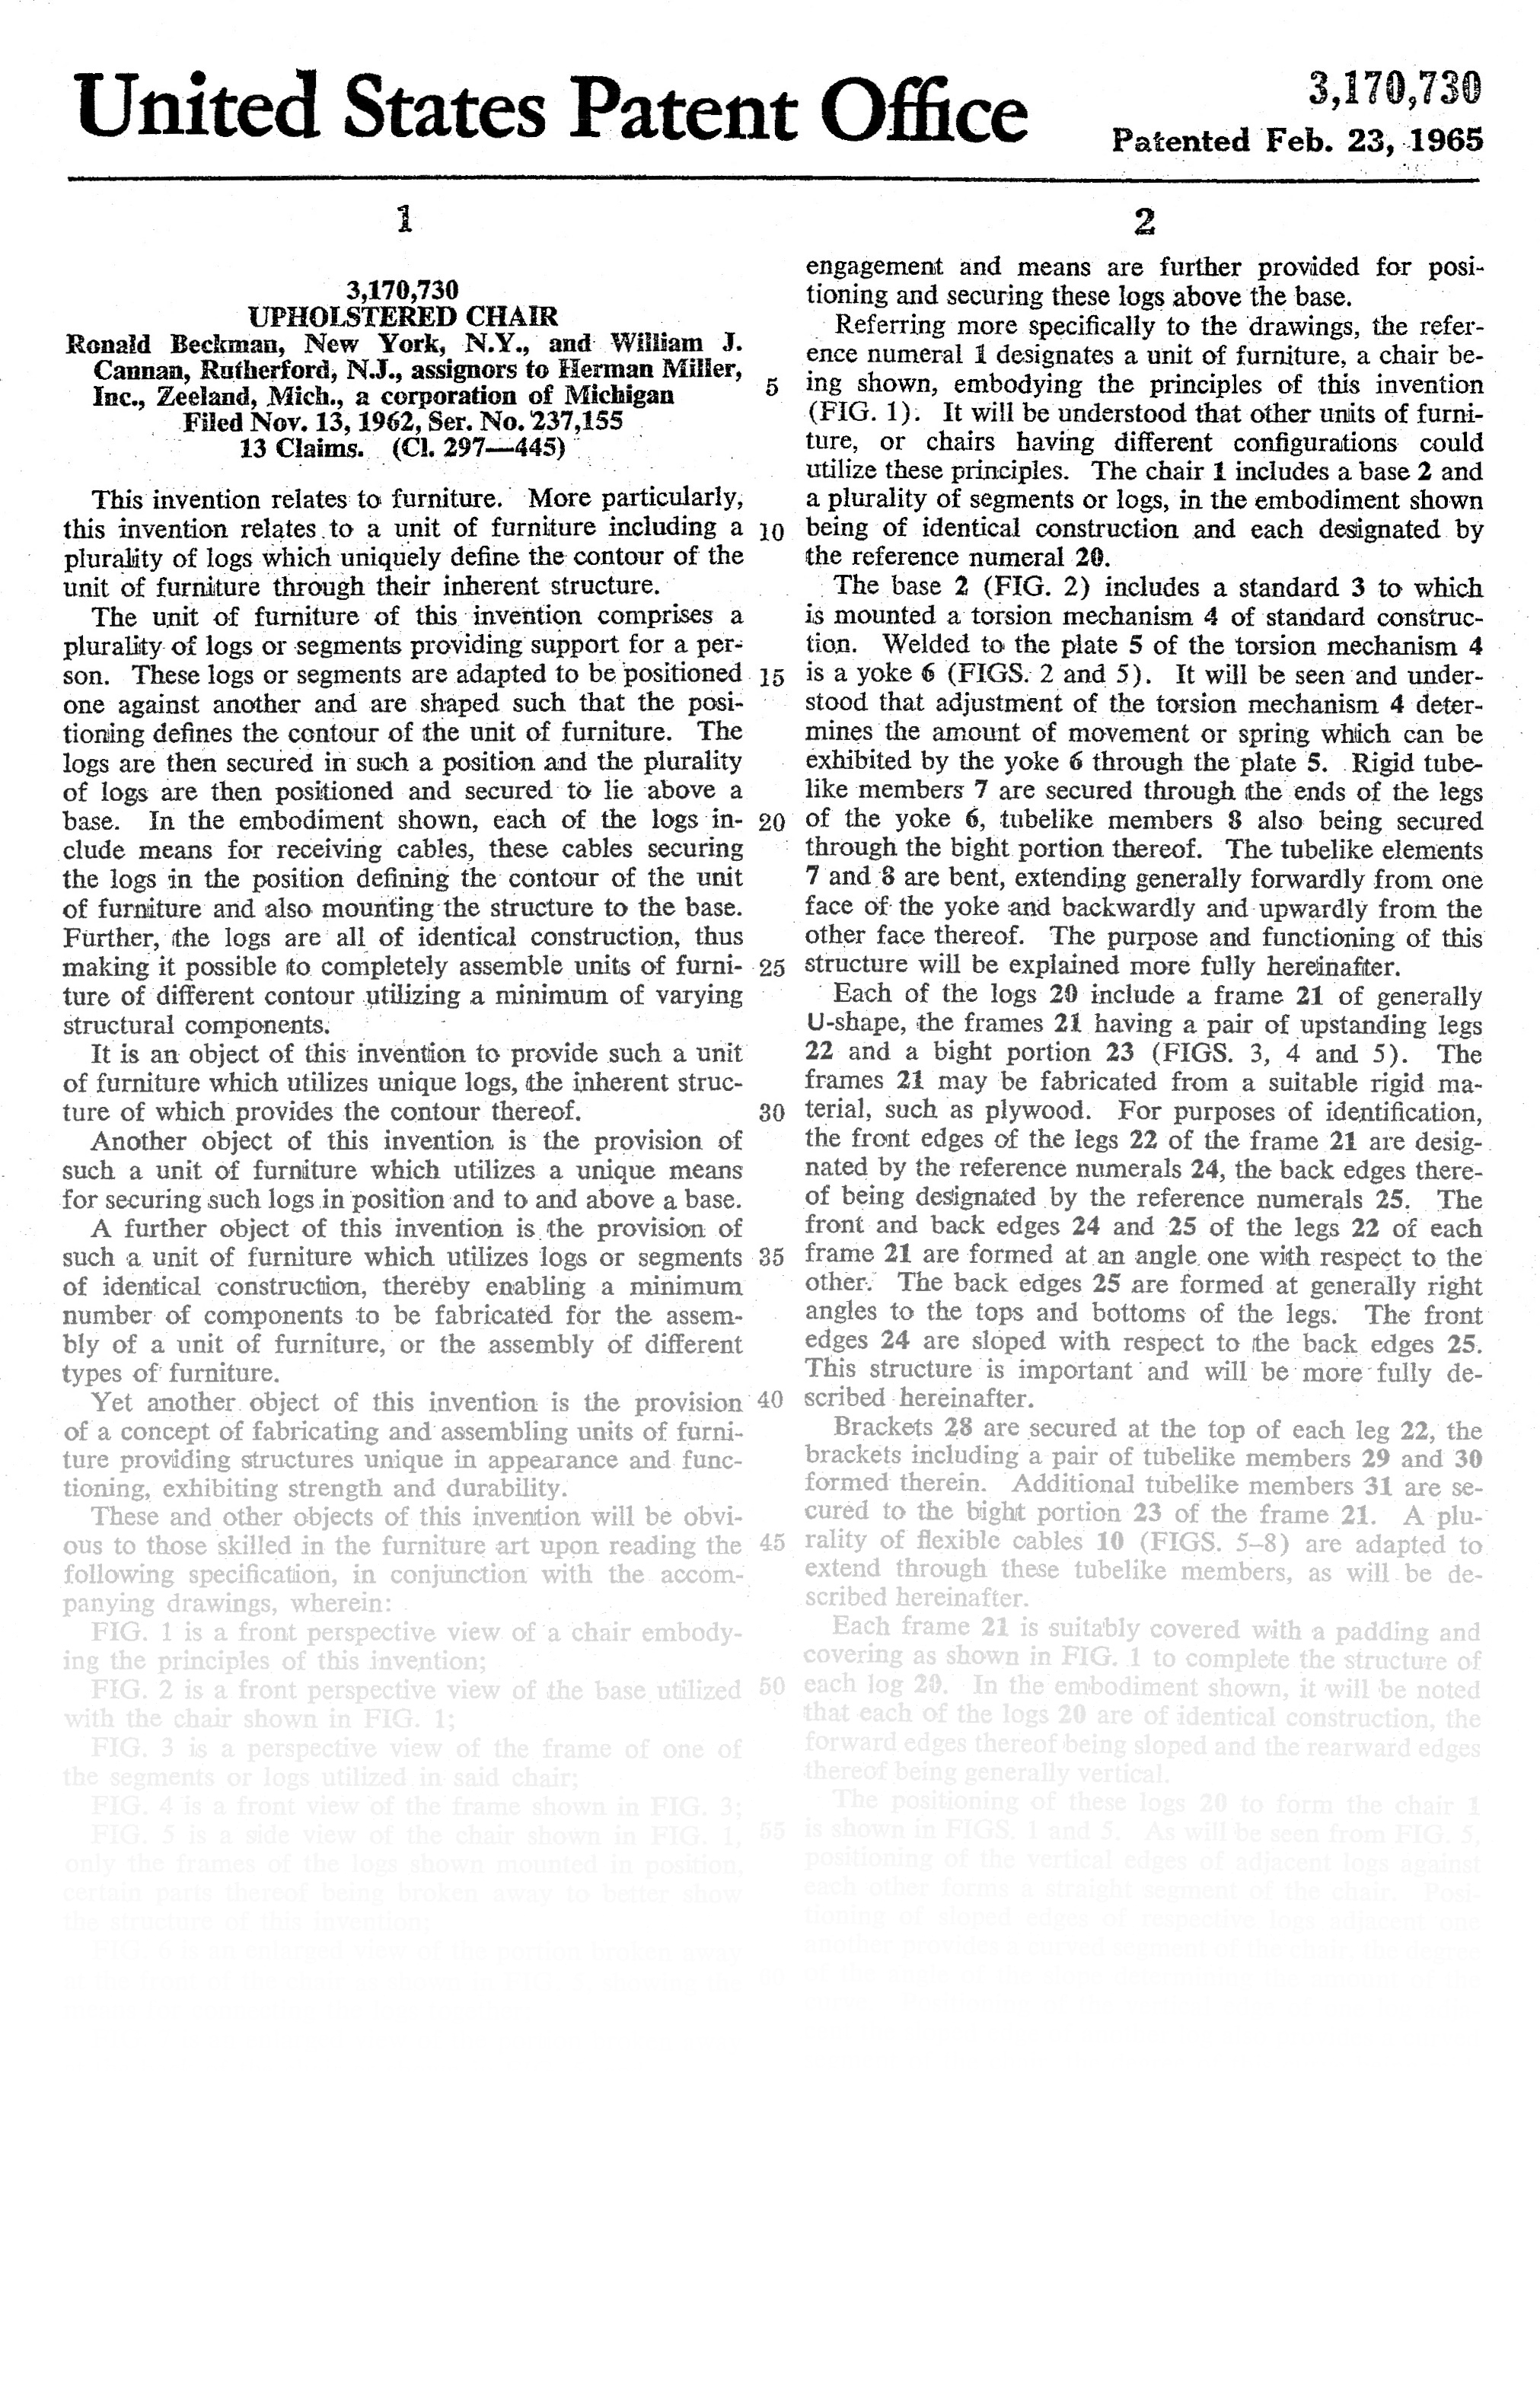 Text page detailing patent from the US Patent Office